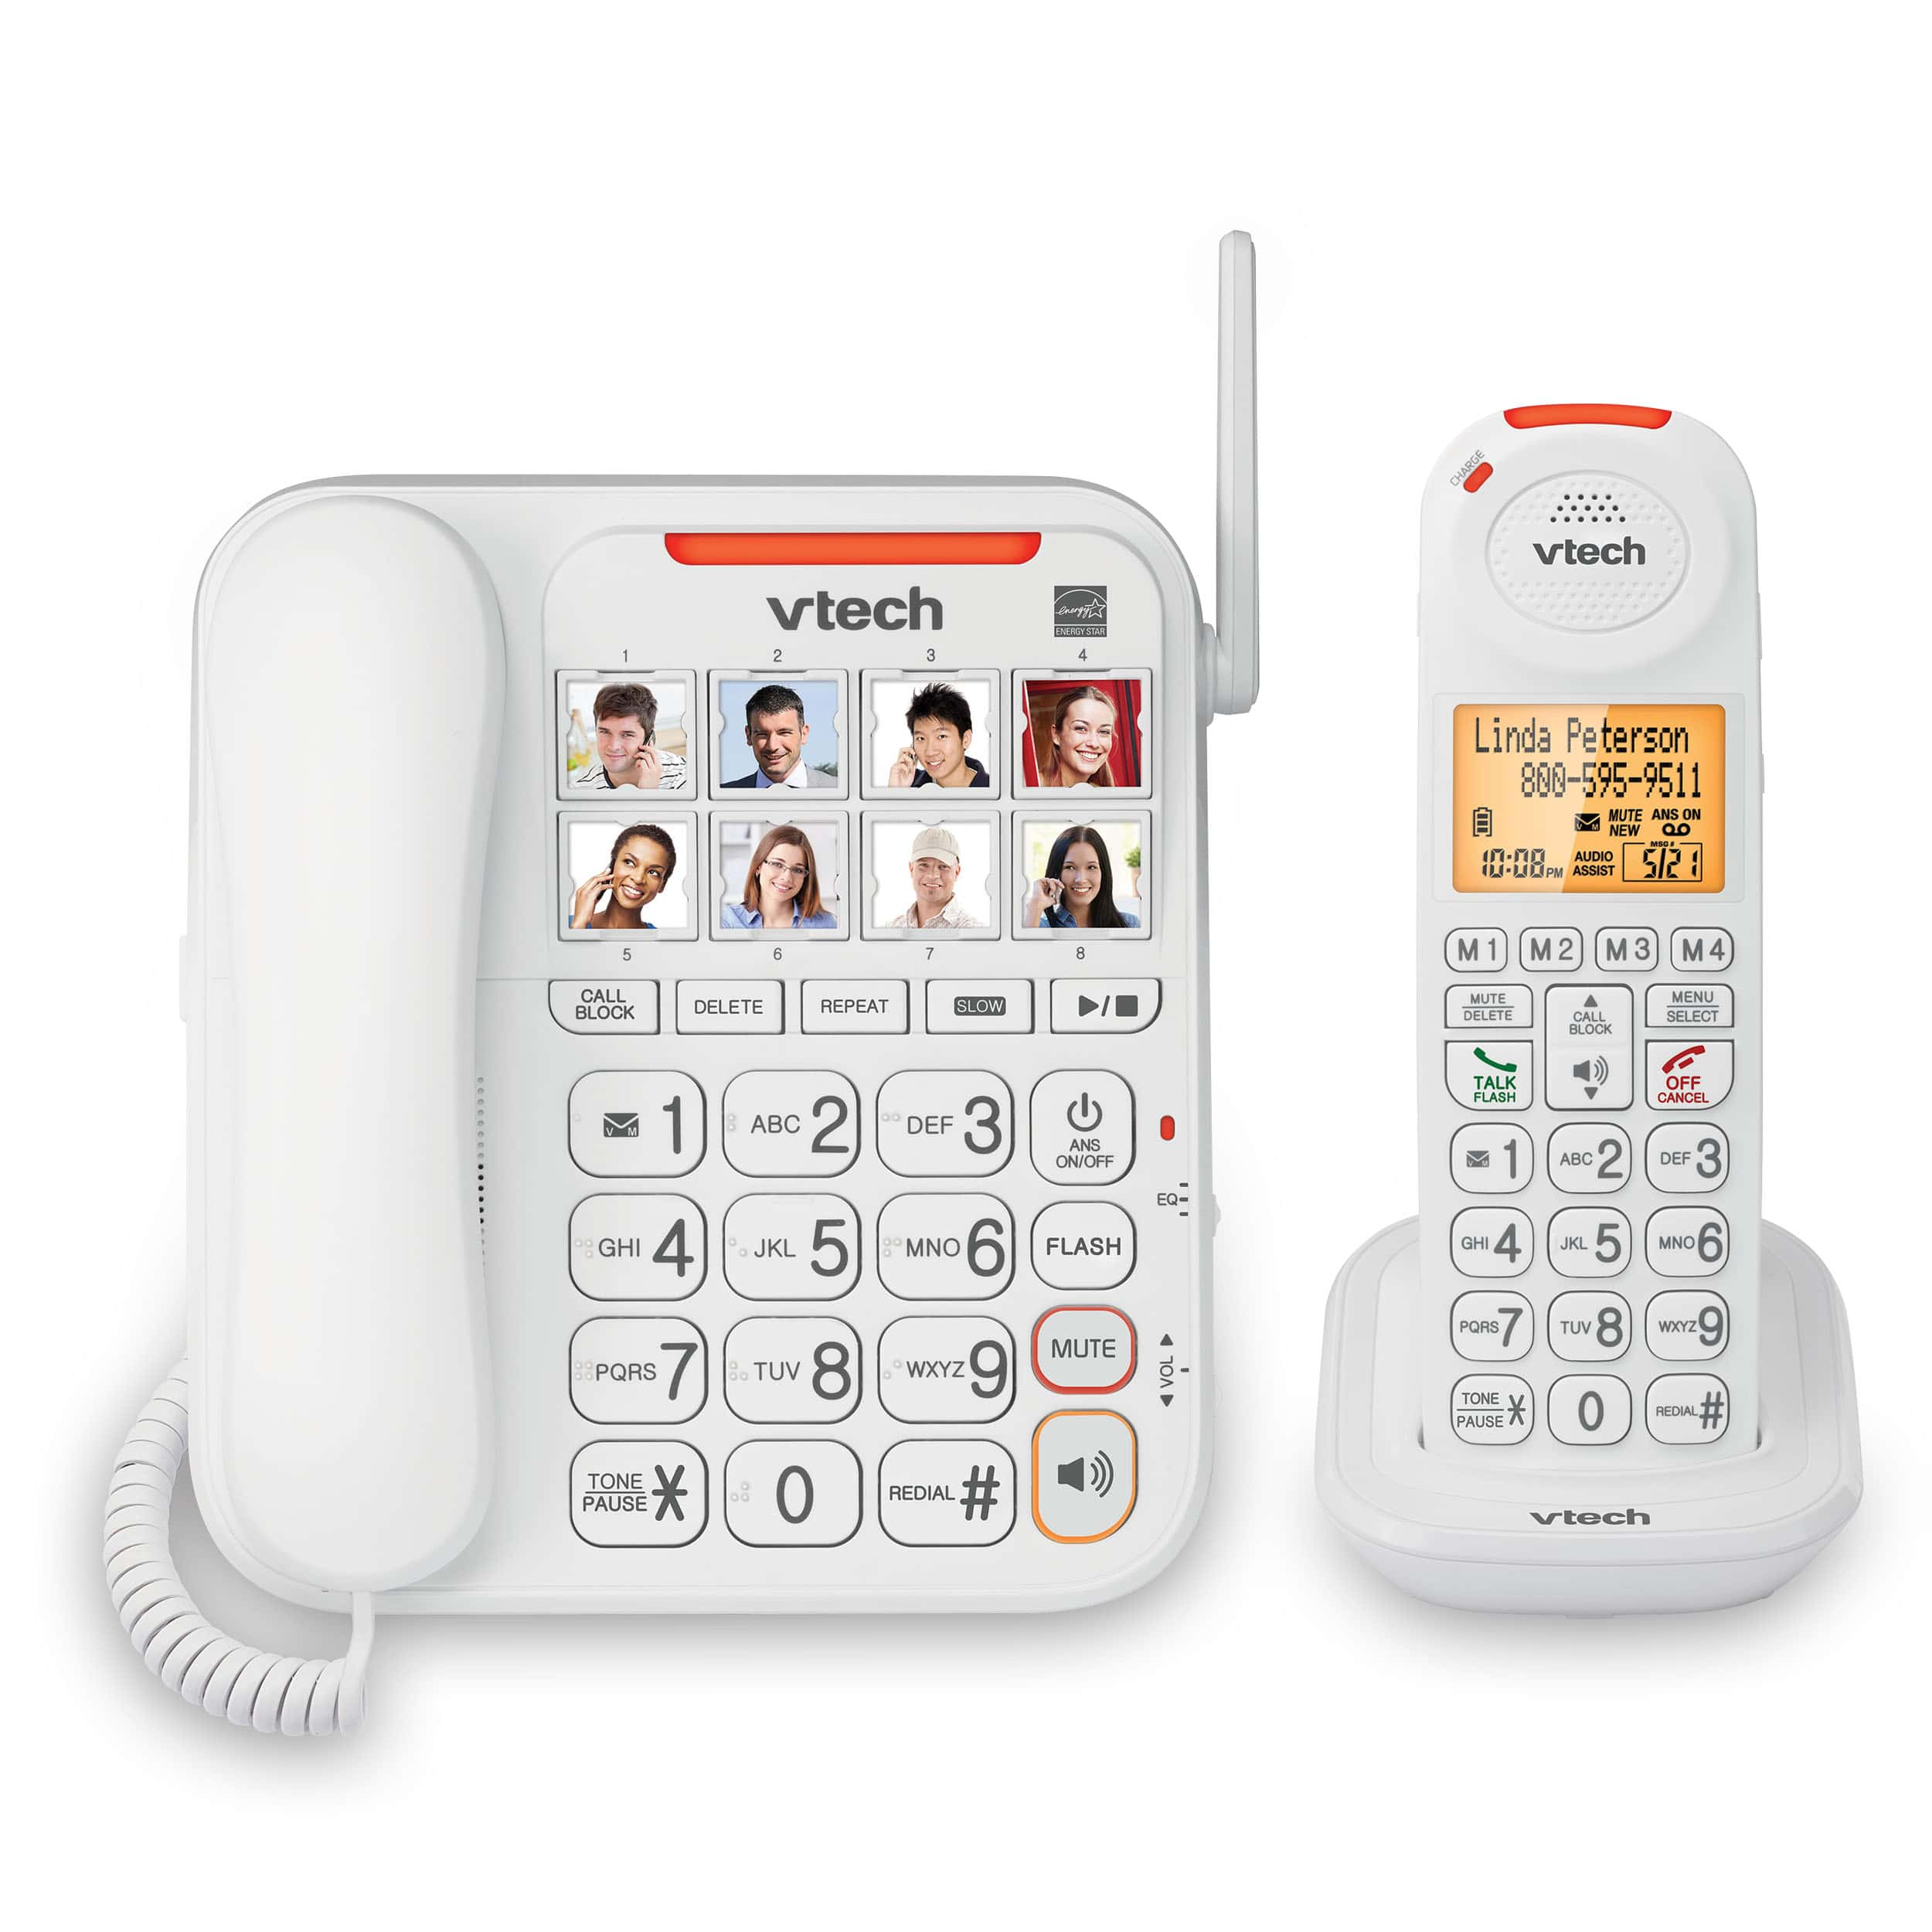 a house phone home phones way to stay connected at home Amplified Corded-Cordless Phone with Answering System, Big Buttons,  Extra-Loud Ringer u0026 Smart Call Blocker